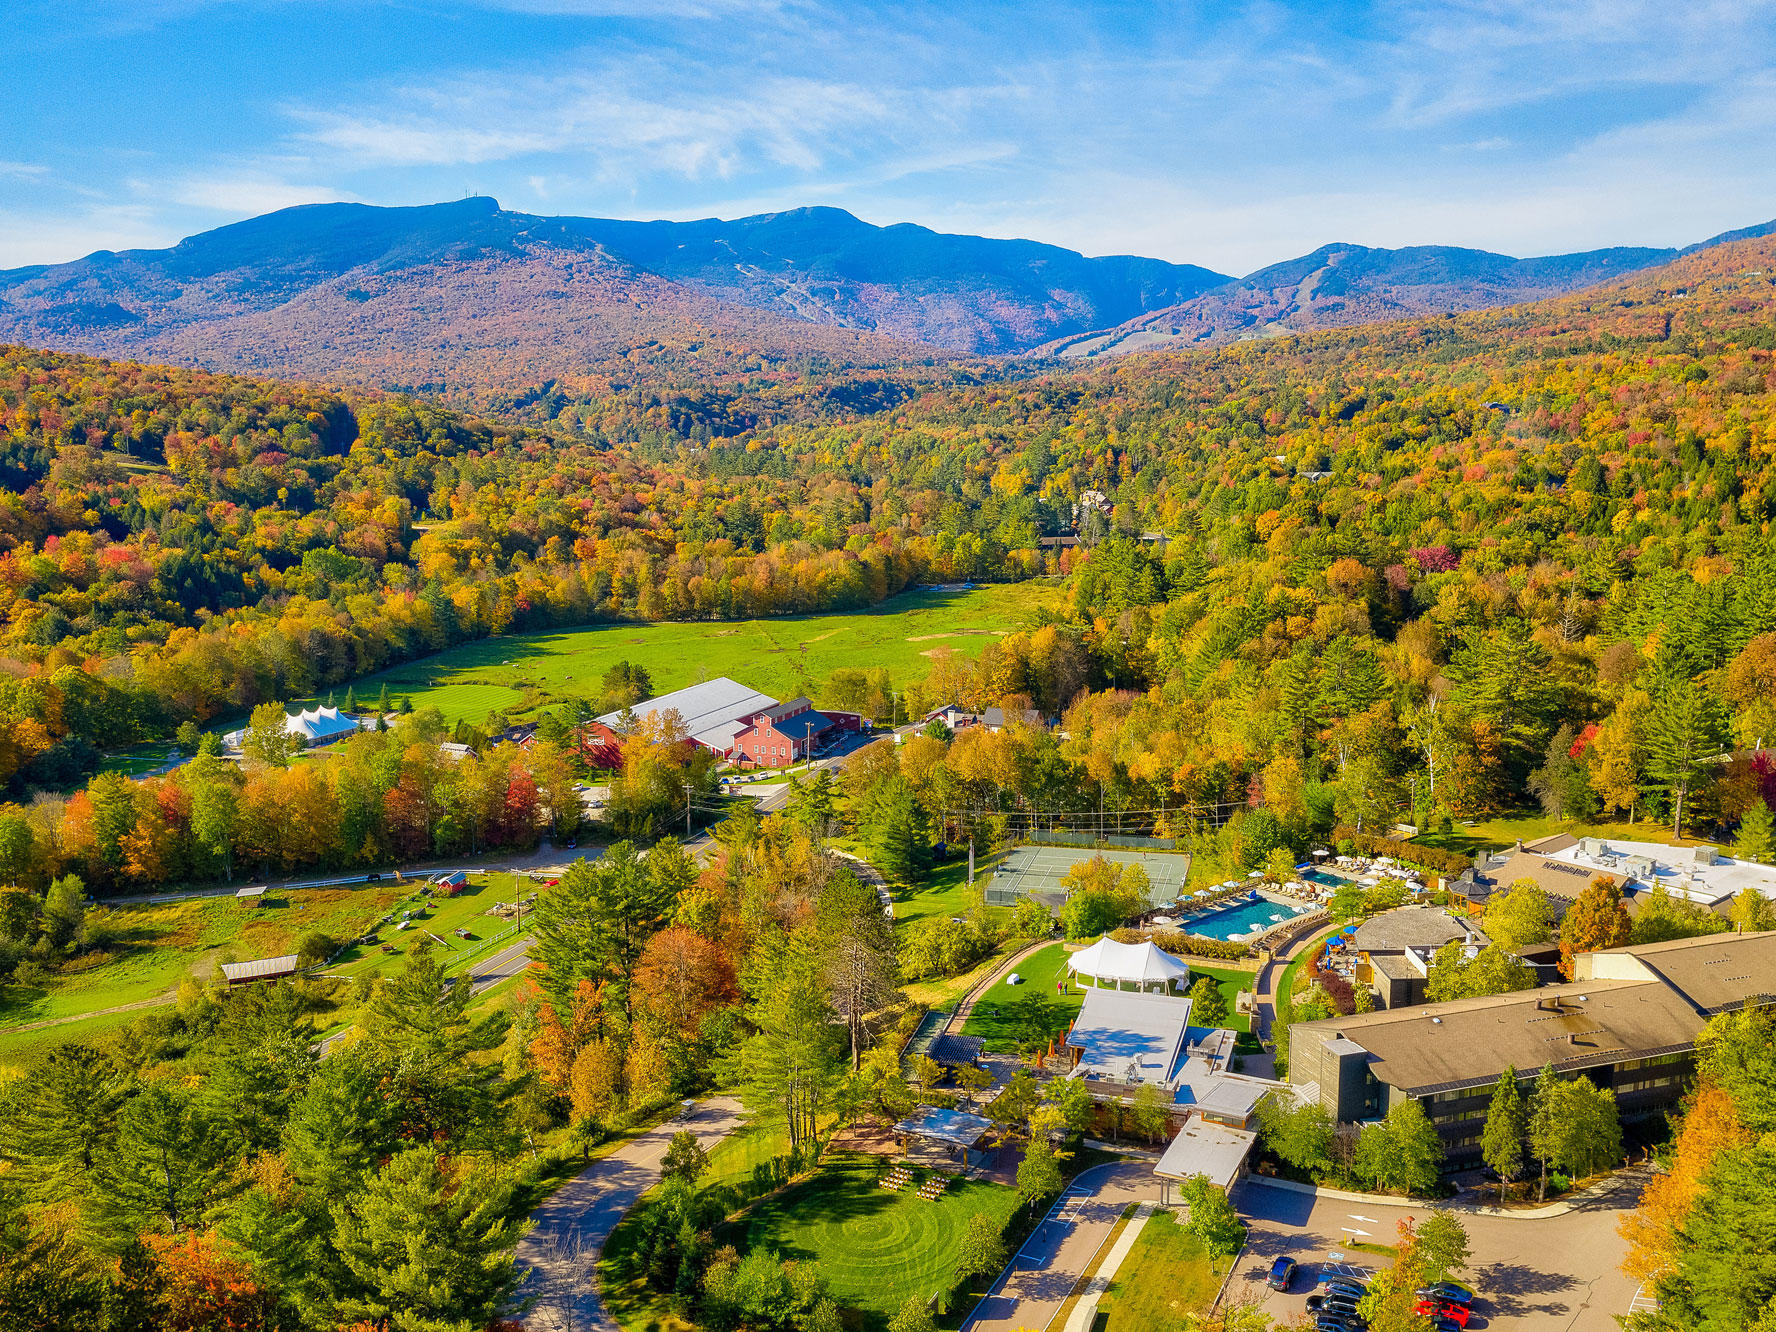 aerial photo of topnotch resort and green mountains in autumn